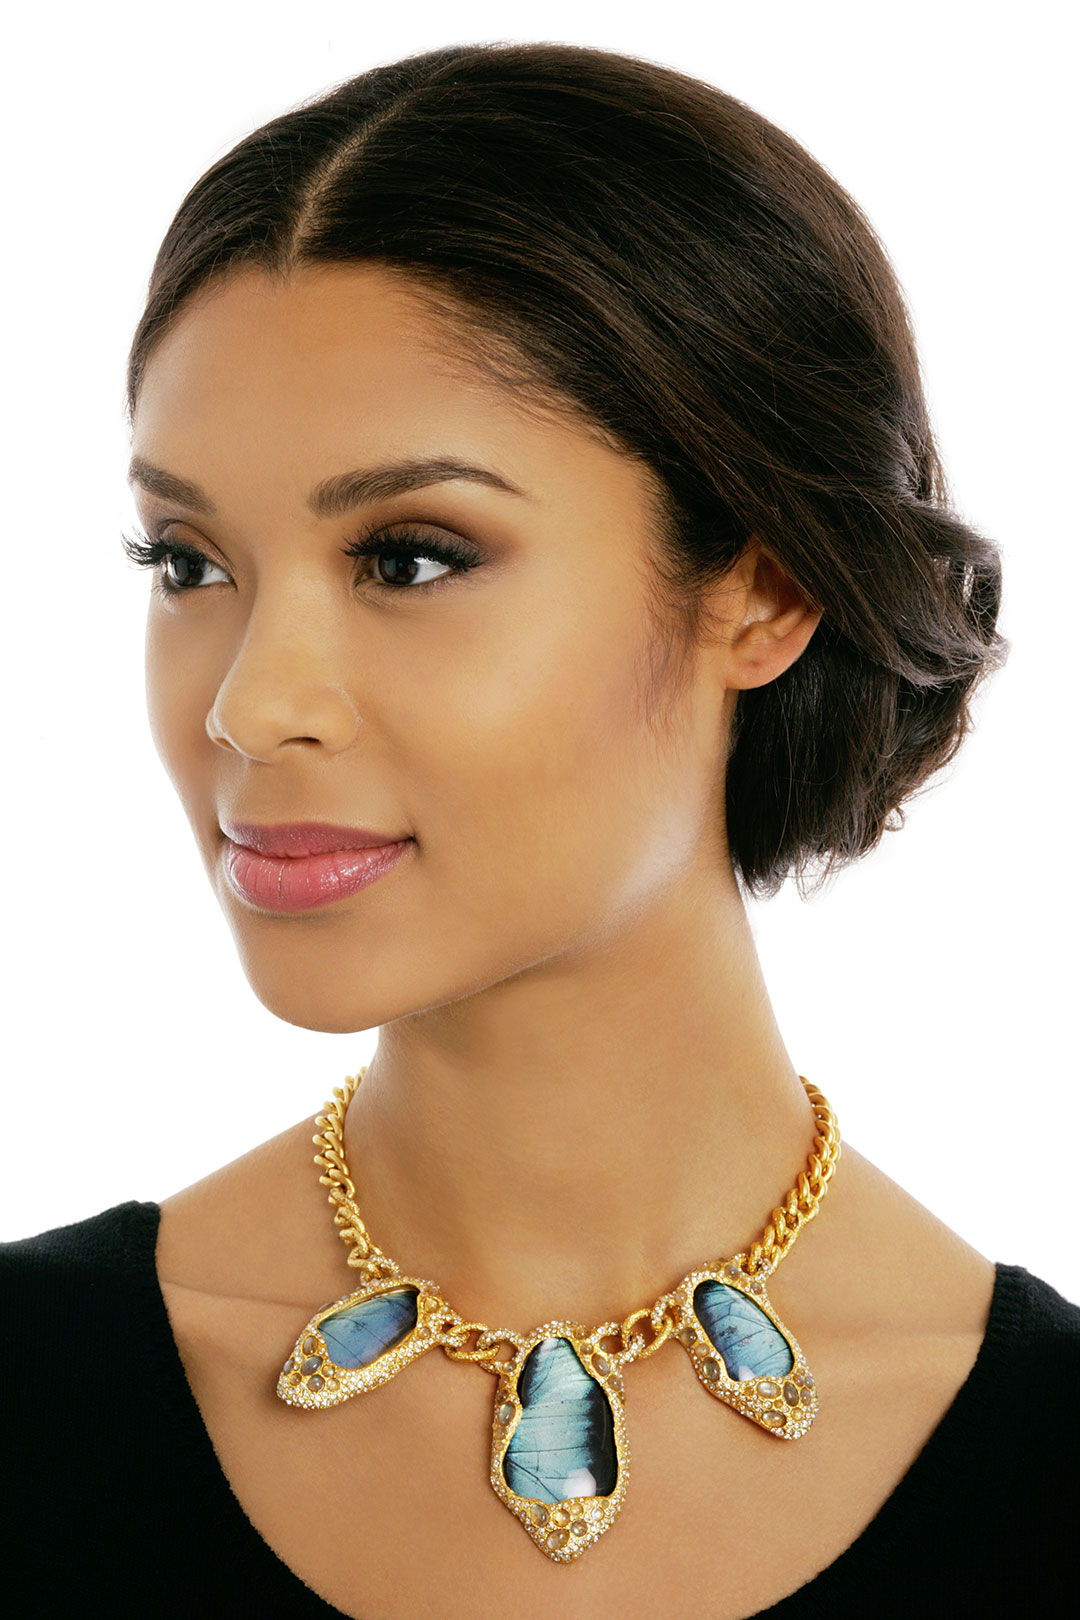 jewelry_necklace_alexis_bittar_papillon_over_1.jpg